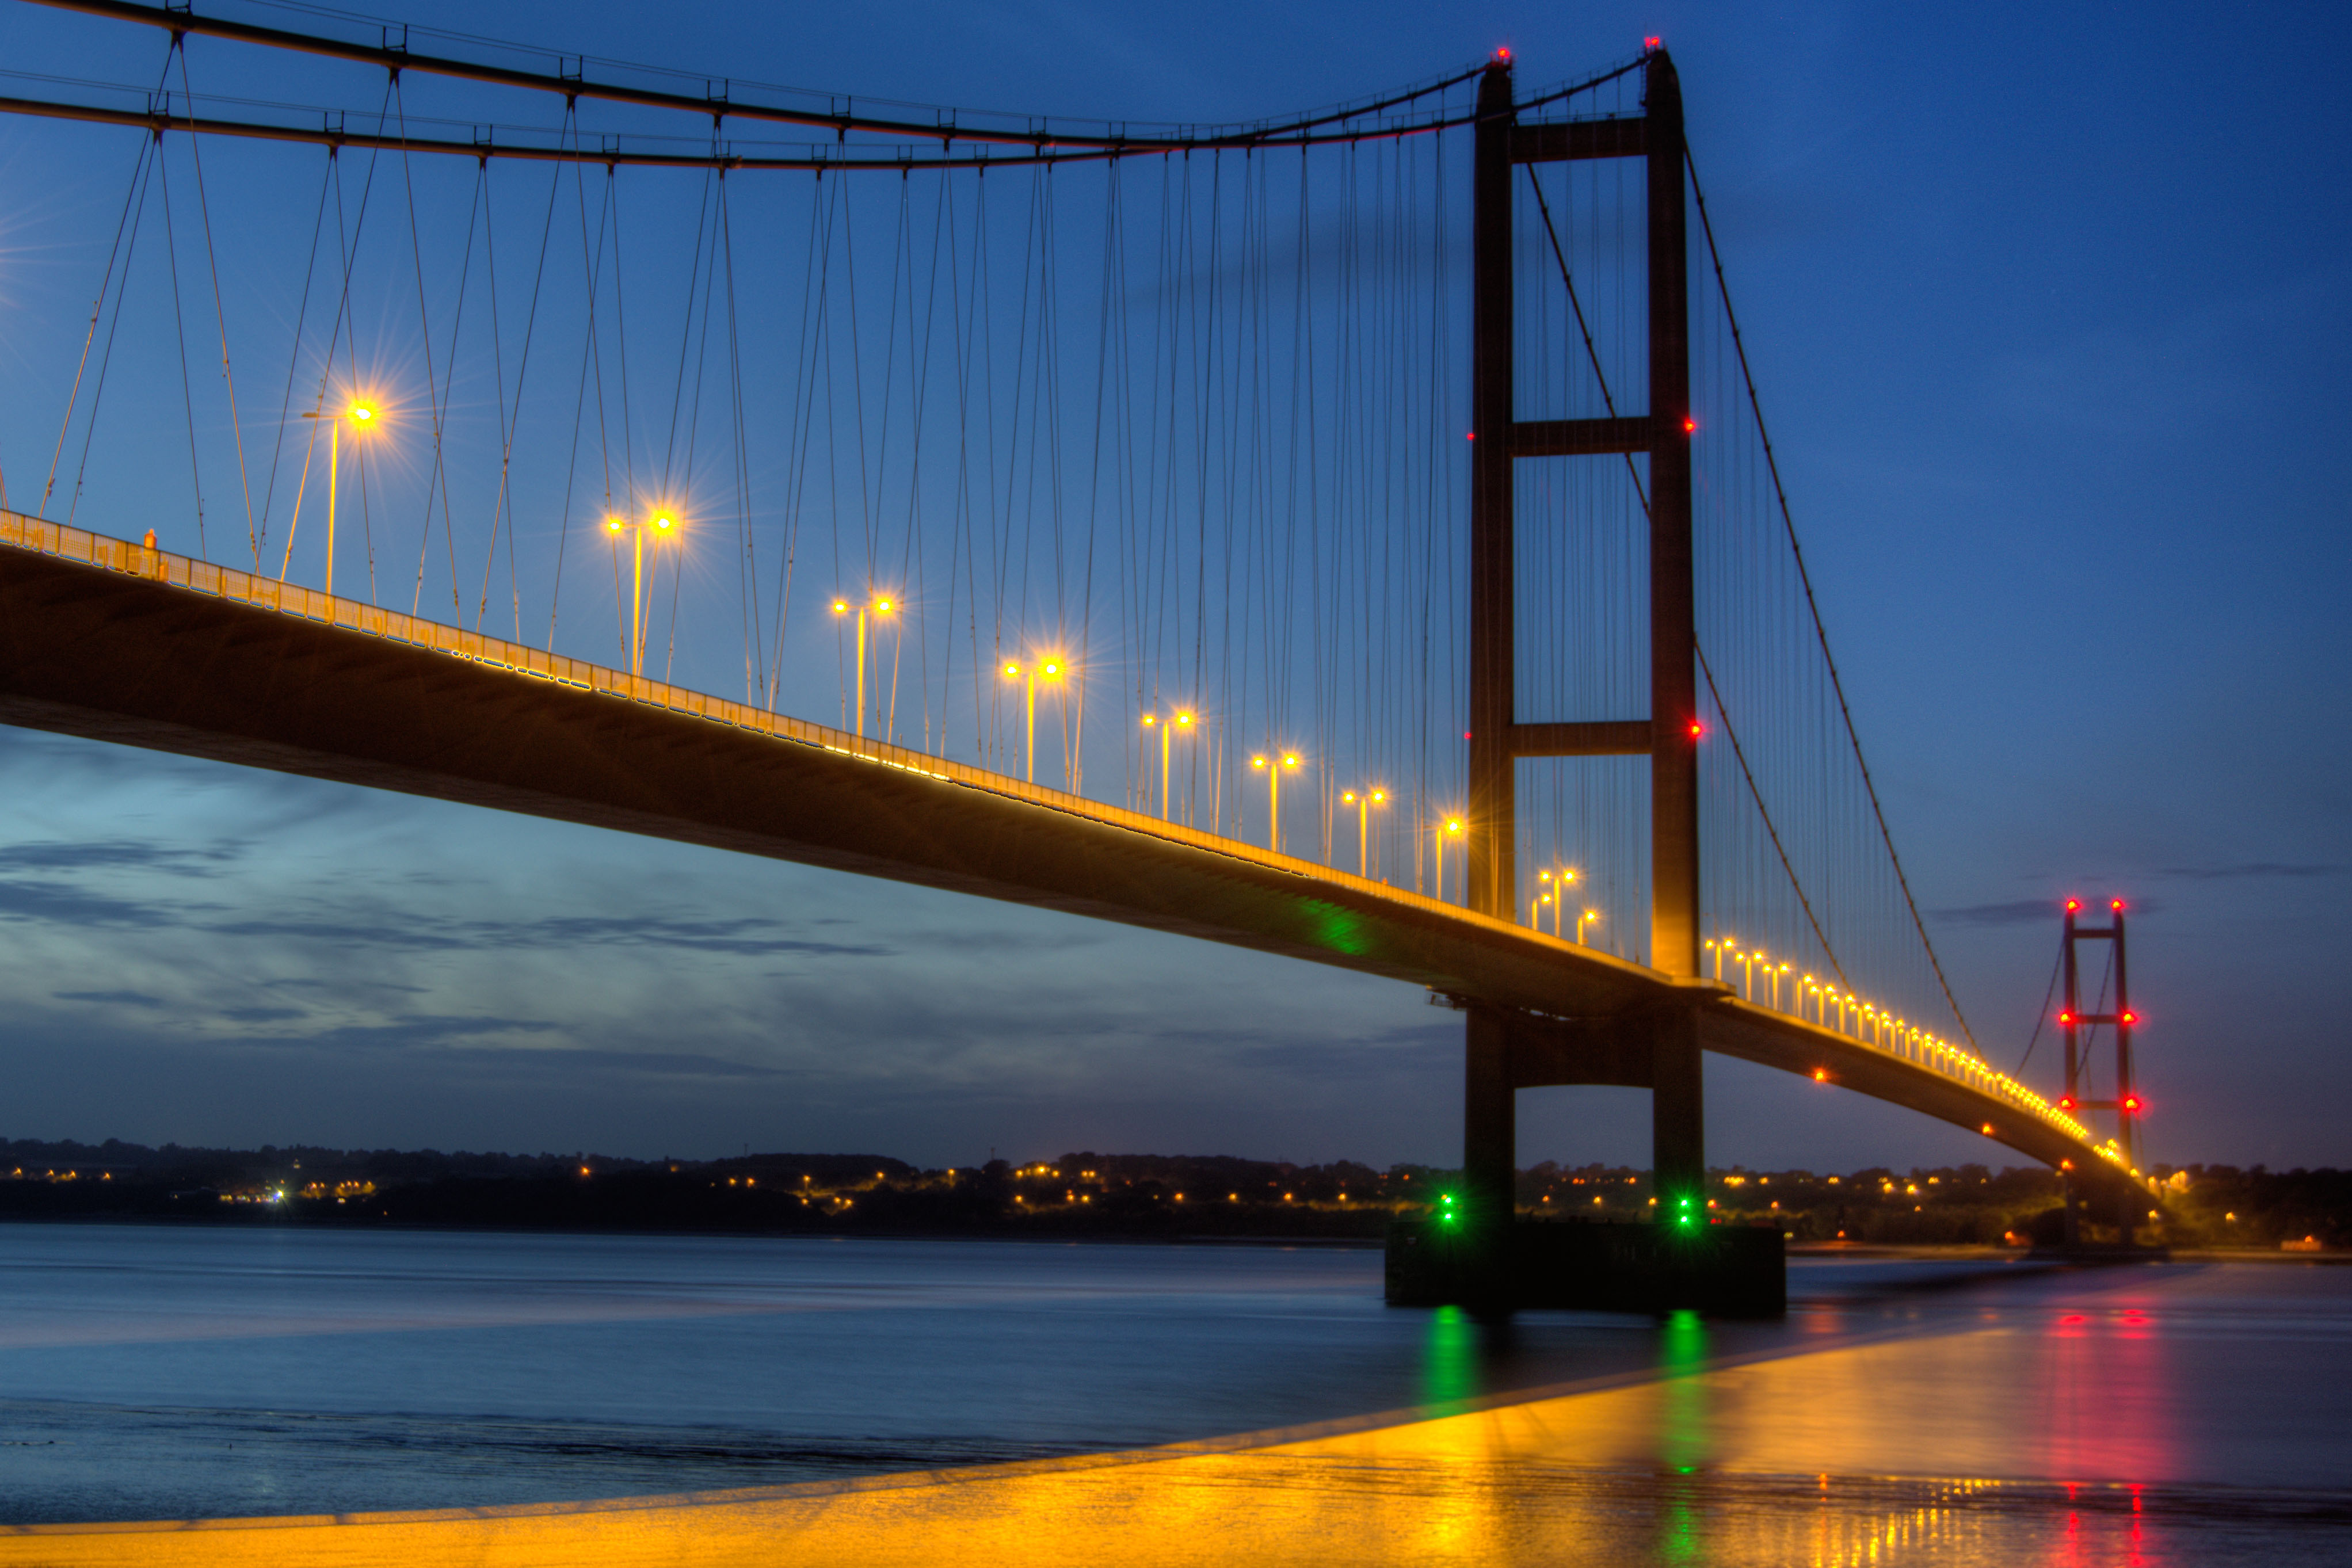 Entry2 Humber Bridge Mike Armstrong